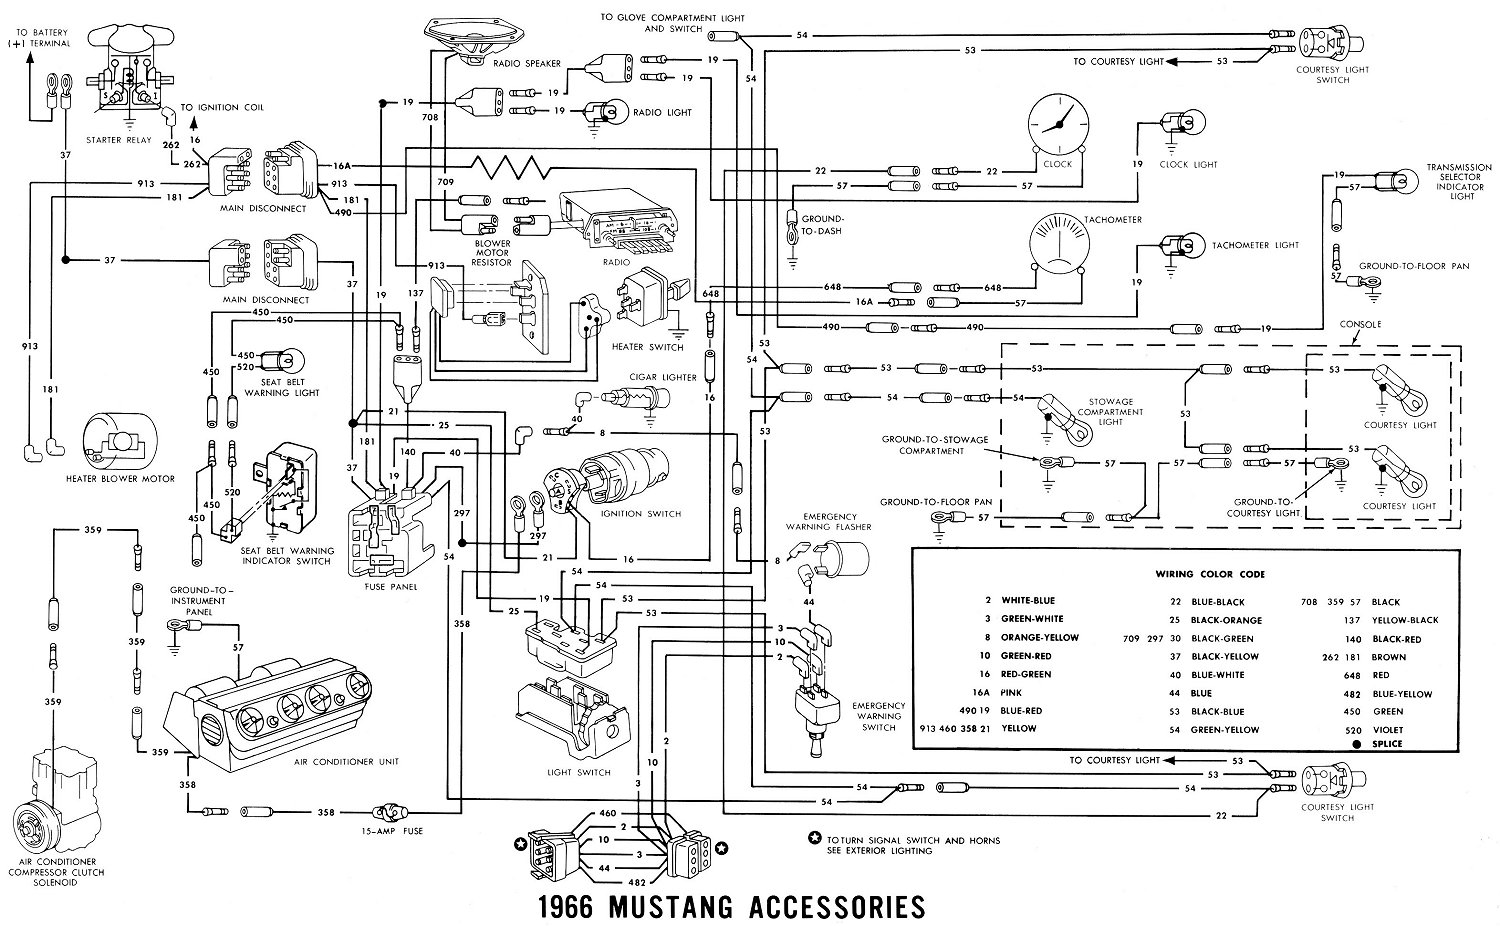 66acces1 1966 mustang wiring diagrams average joe restoration 66 mustang ignition wiring diagram at soozxer.org